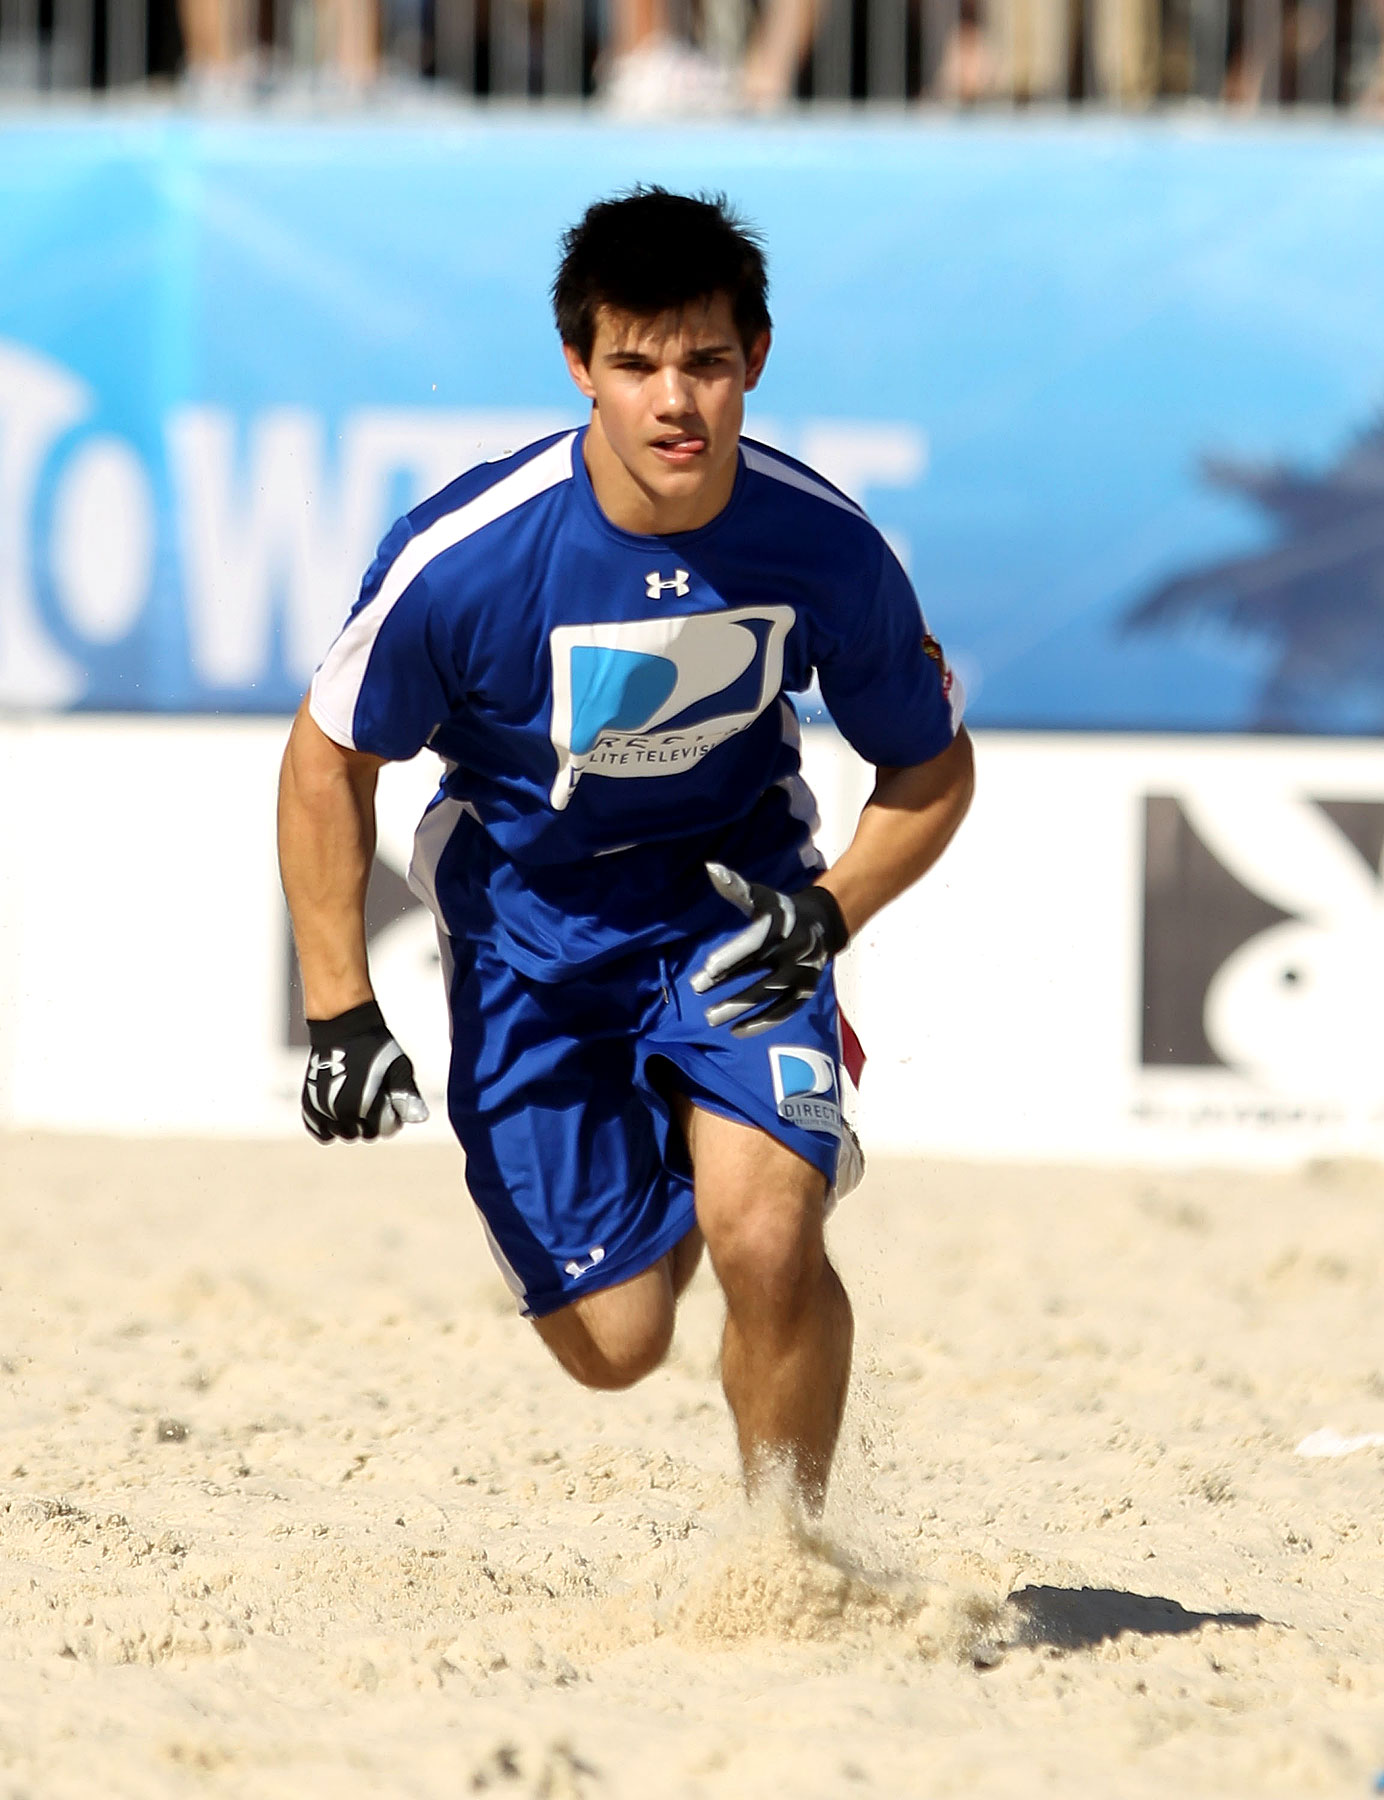 Taylor Lautner, Other Hotties Play Flag Football (PHOTOS)